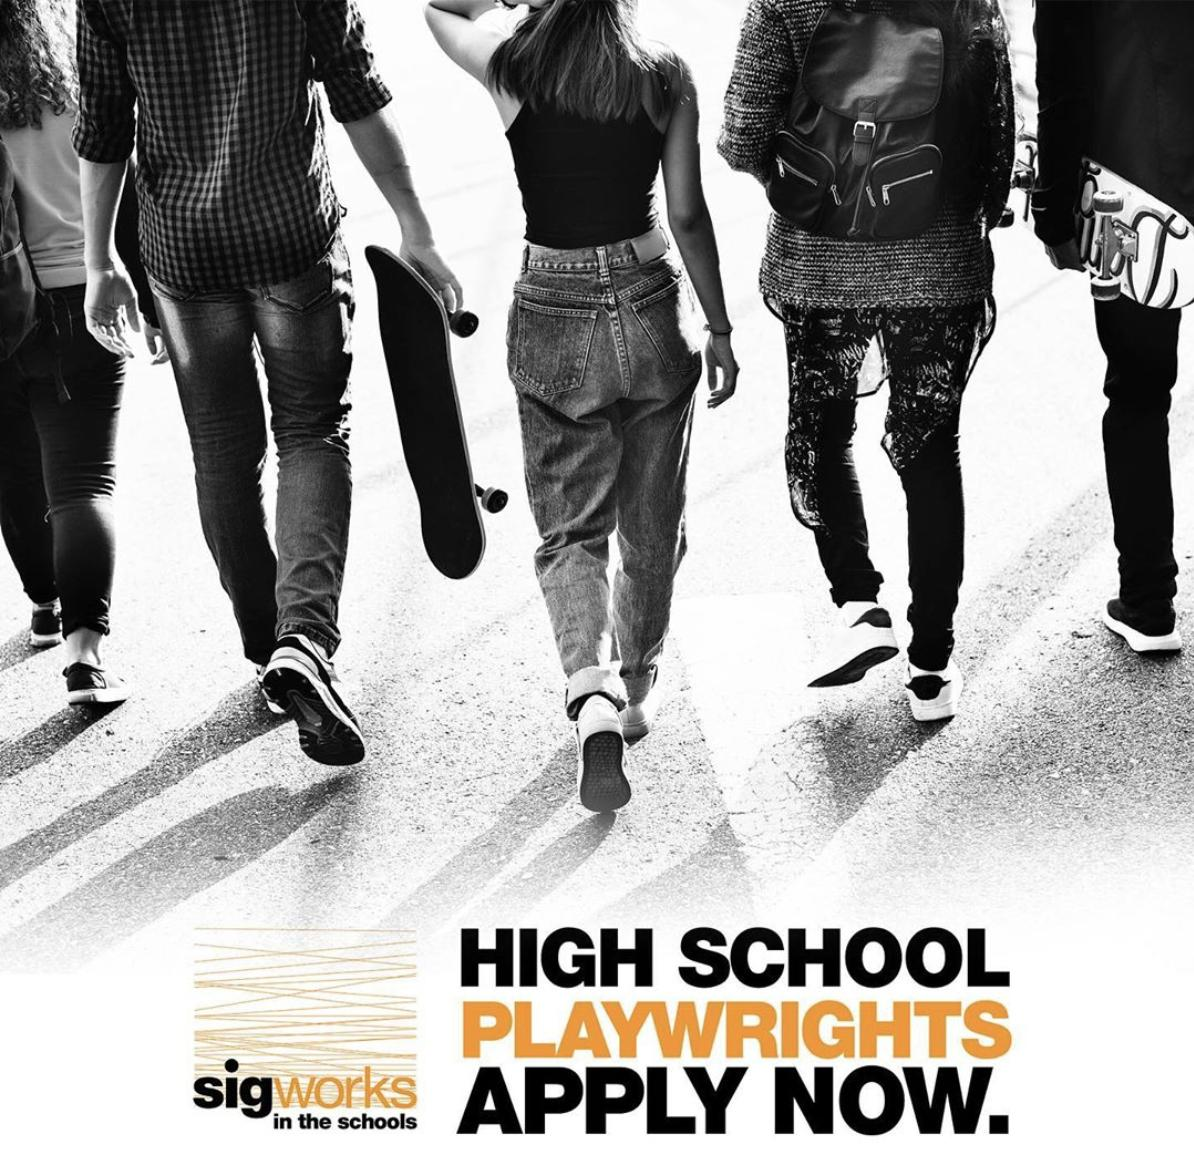 APS High School Students, check out this great opportunity --> Use this link to sign up --> <a target='_blank' href='https://t.co/amBN93wYQr'>https://t.co/amBN93wYQr</a> See … this Instagram photo by <a target='_blank' href='http://twitter.com/sigtheatre'>@sigtheatre</a>; <a target='_blank' href='http://twitter.com/APSArts'>@APSArts</a> <a target='_blank' href='http://search.twitter.com/search?q=theater'><a target='_blank' href='https://twitter.com/hashtag/theater?src=hash'>#theater</a></a> <a target='_blank' href='https://t.co/JBreA7XZUp'>https://t.co/JBreA7XZUp</a>